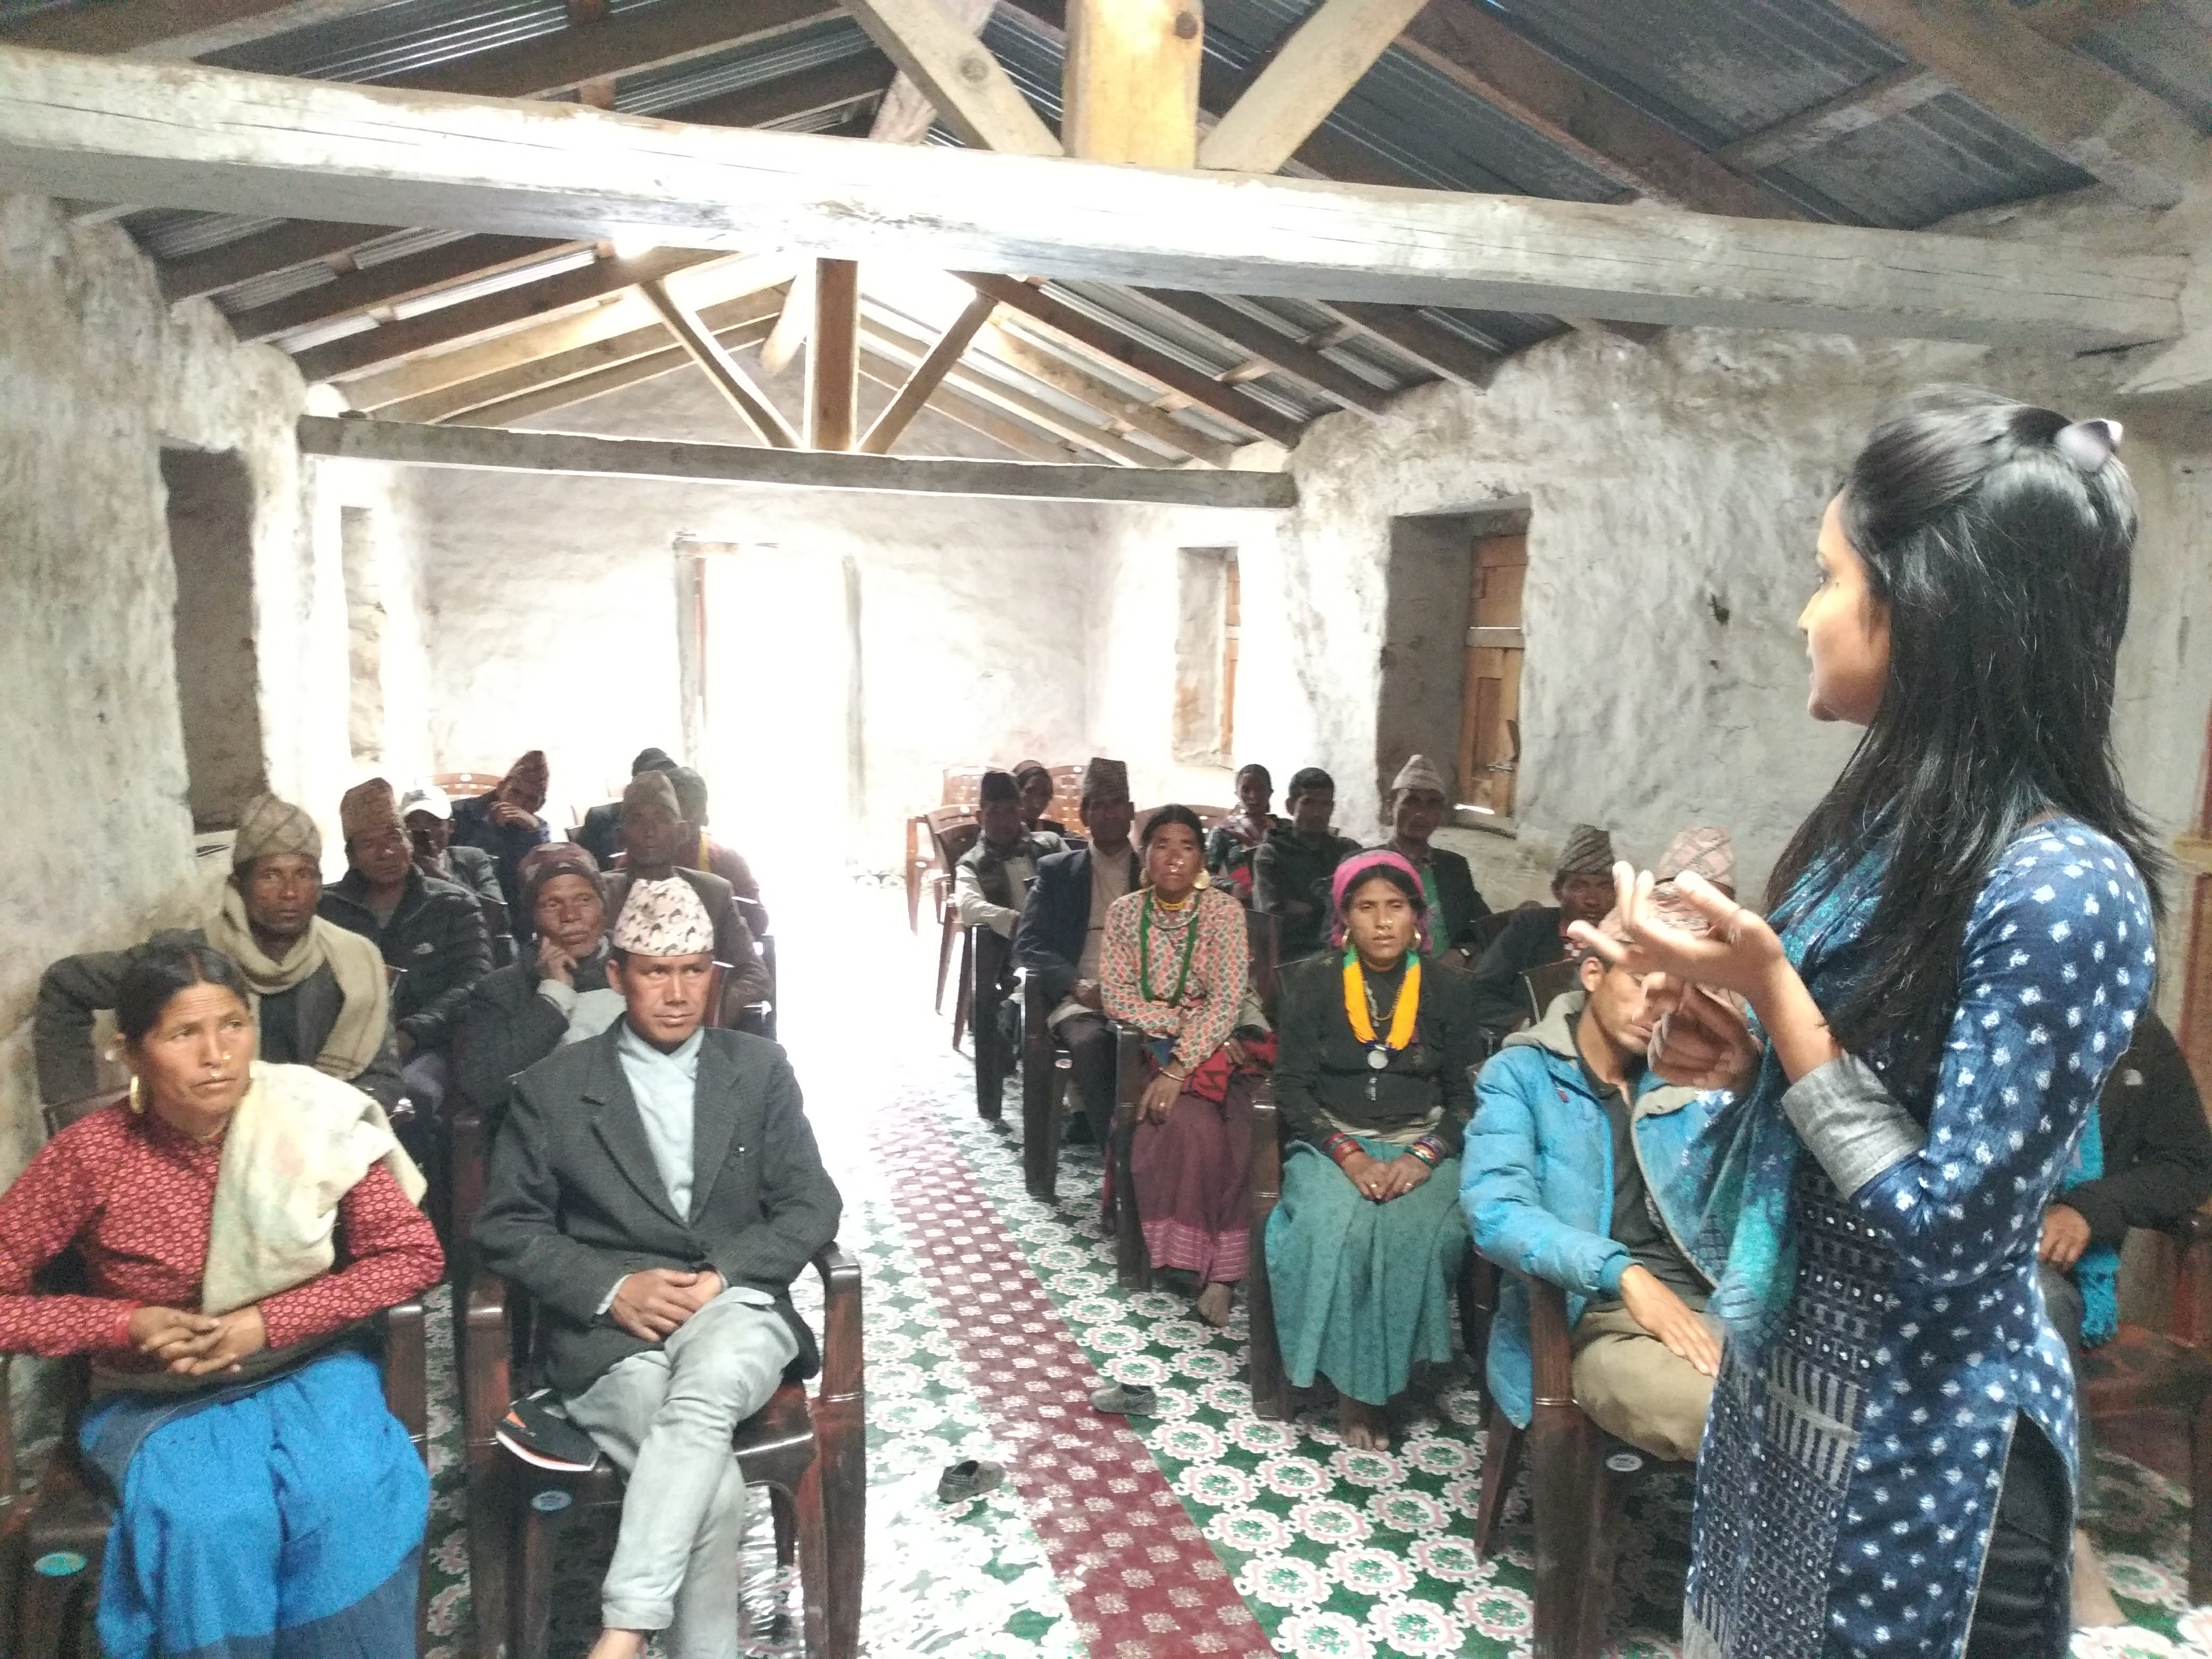 A mentor of International IDEA's Coherence programme explaining the elected representatives of a Adanchuli Gaunpalika (rural municipality) of Nepal's Karnali Province about the importance of their Gaunpalika's strategic vision in annual planning.Photo credit: International IDEA